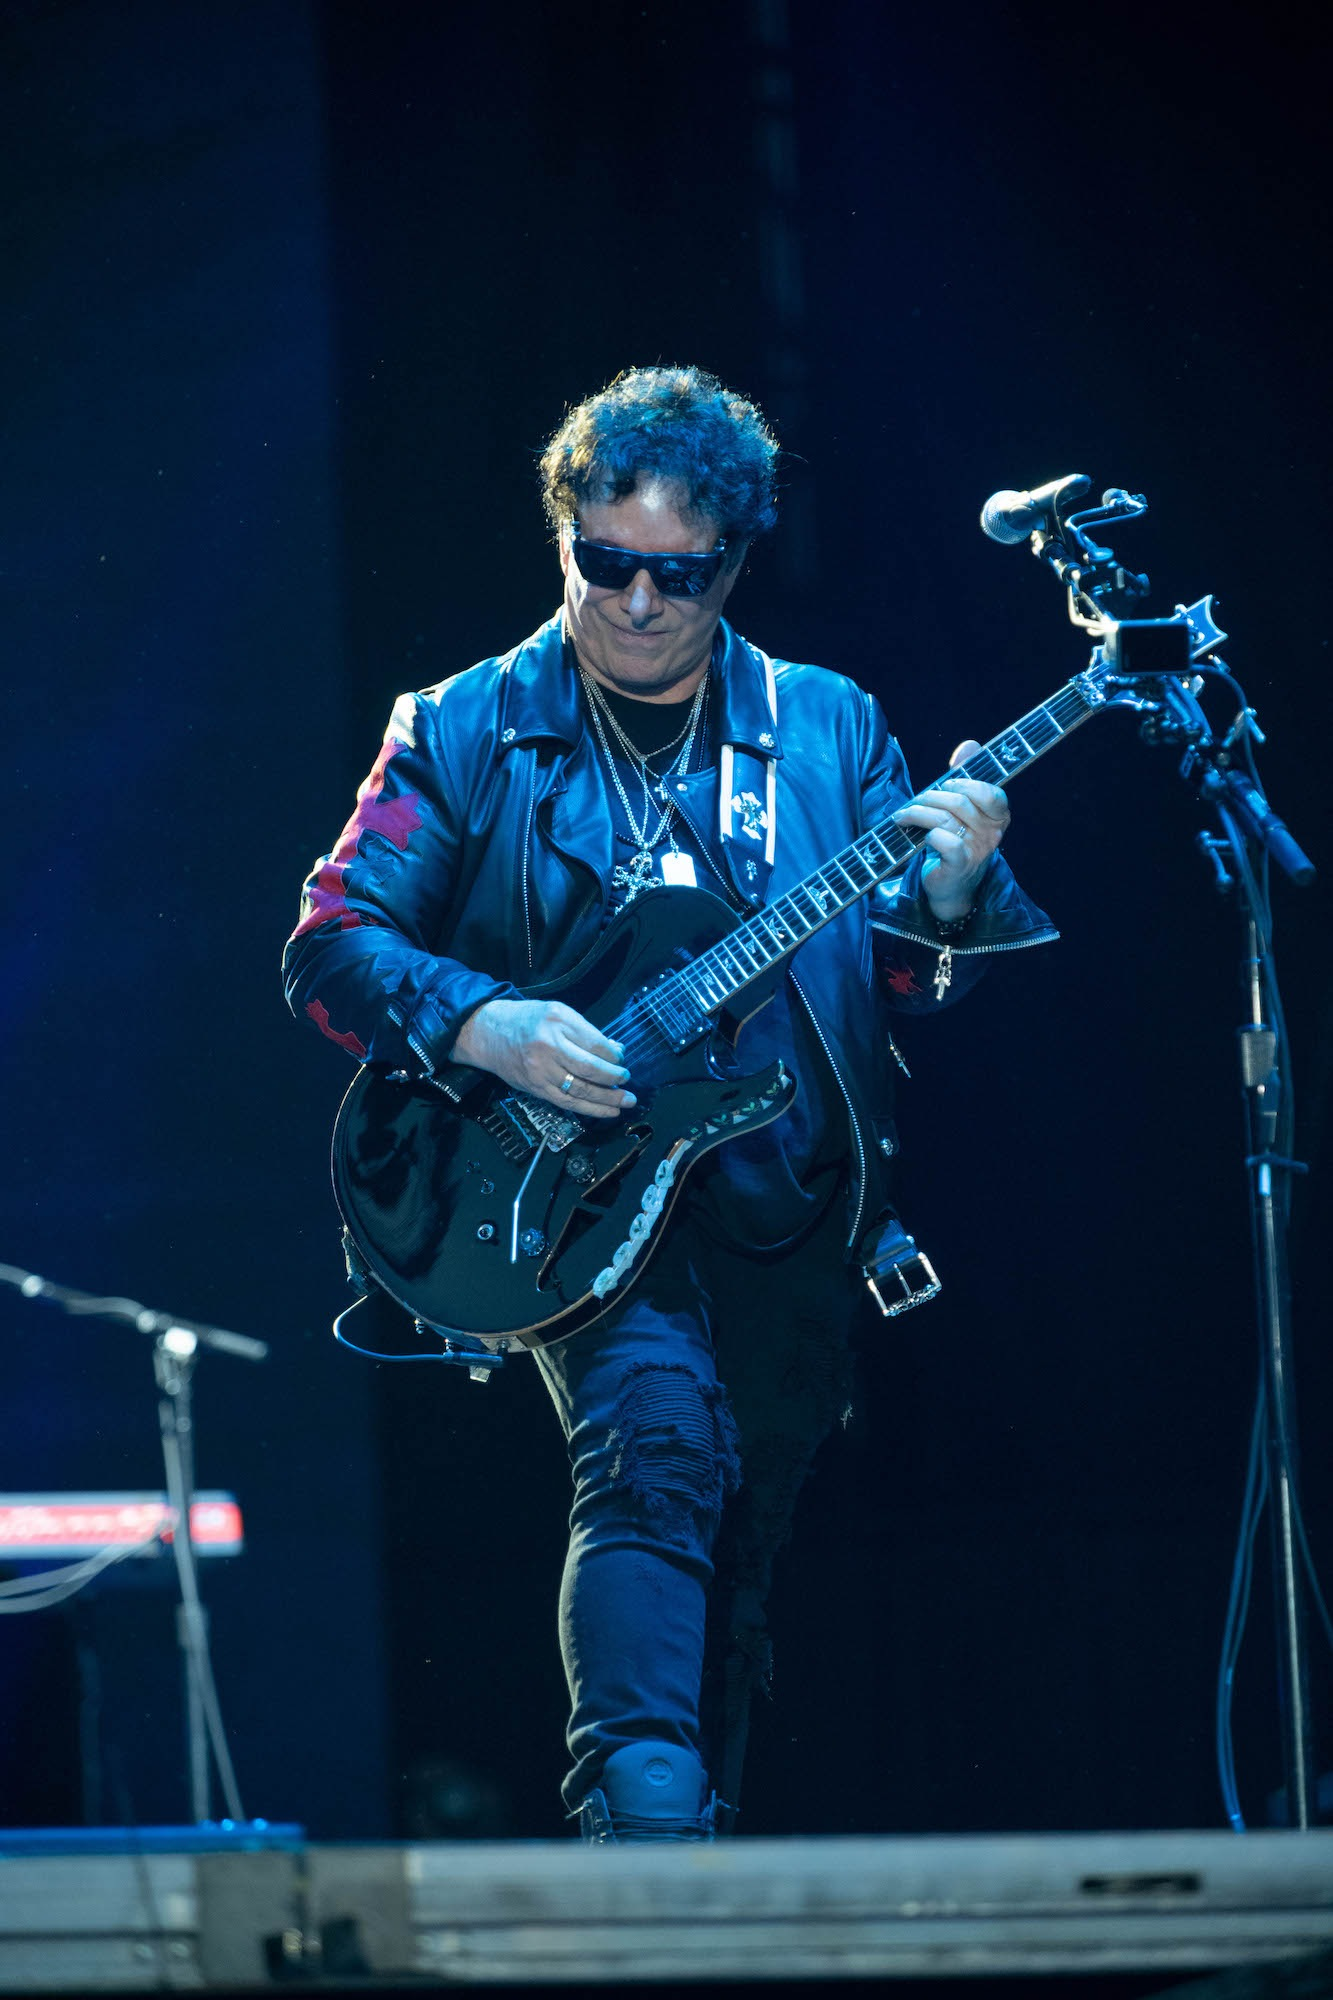 Journey Live at Lollapalooza [GALLERY] 5